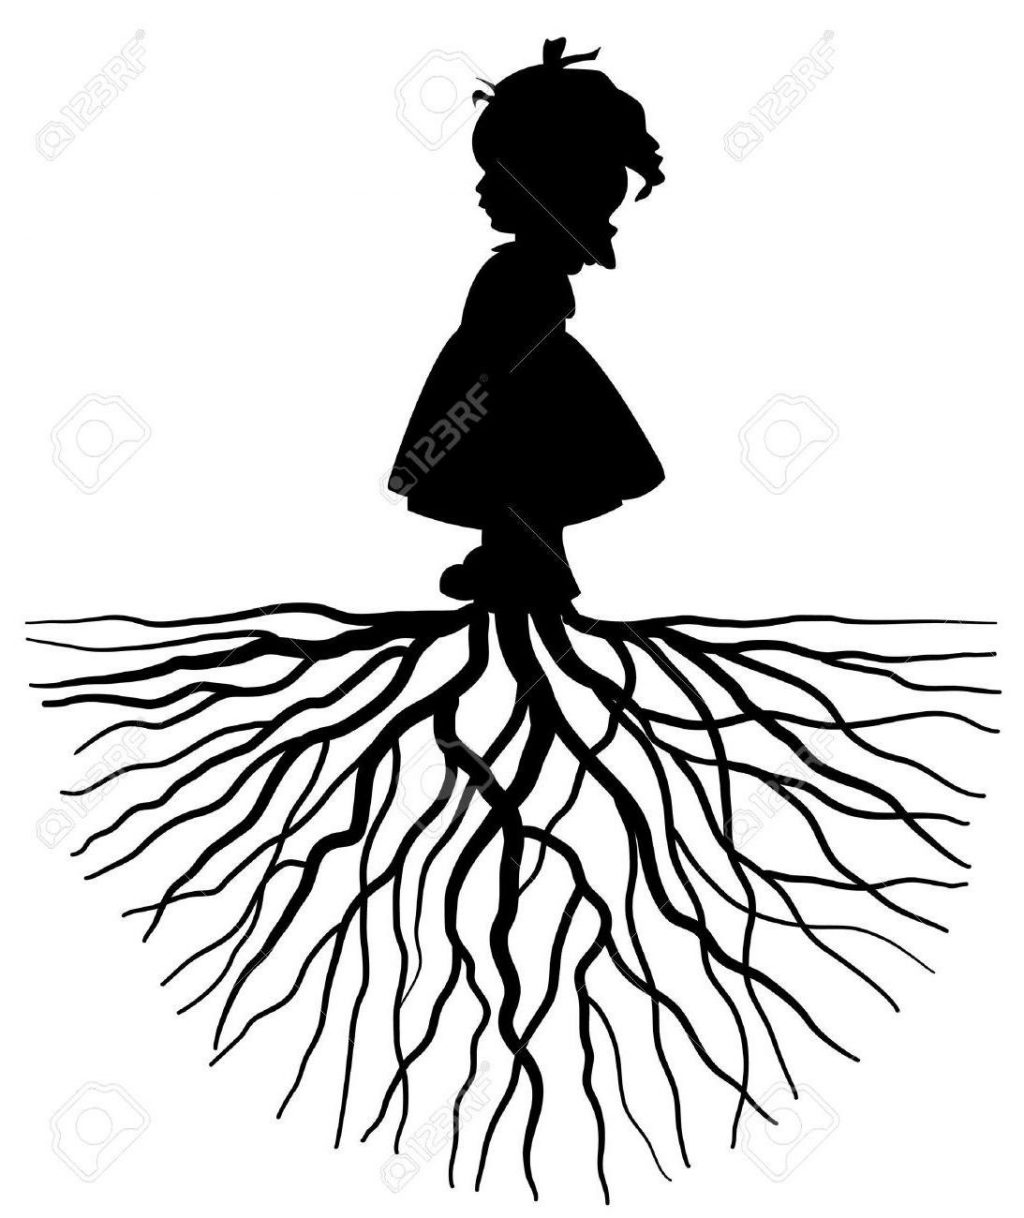 1024x1218 Best 15 Hd The Silhouette Of Girl With Root Stock Vector Tree